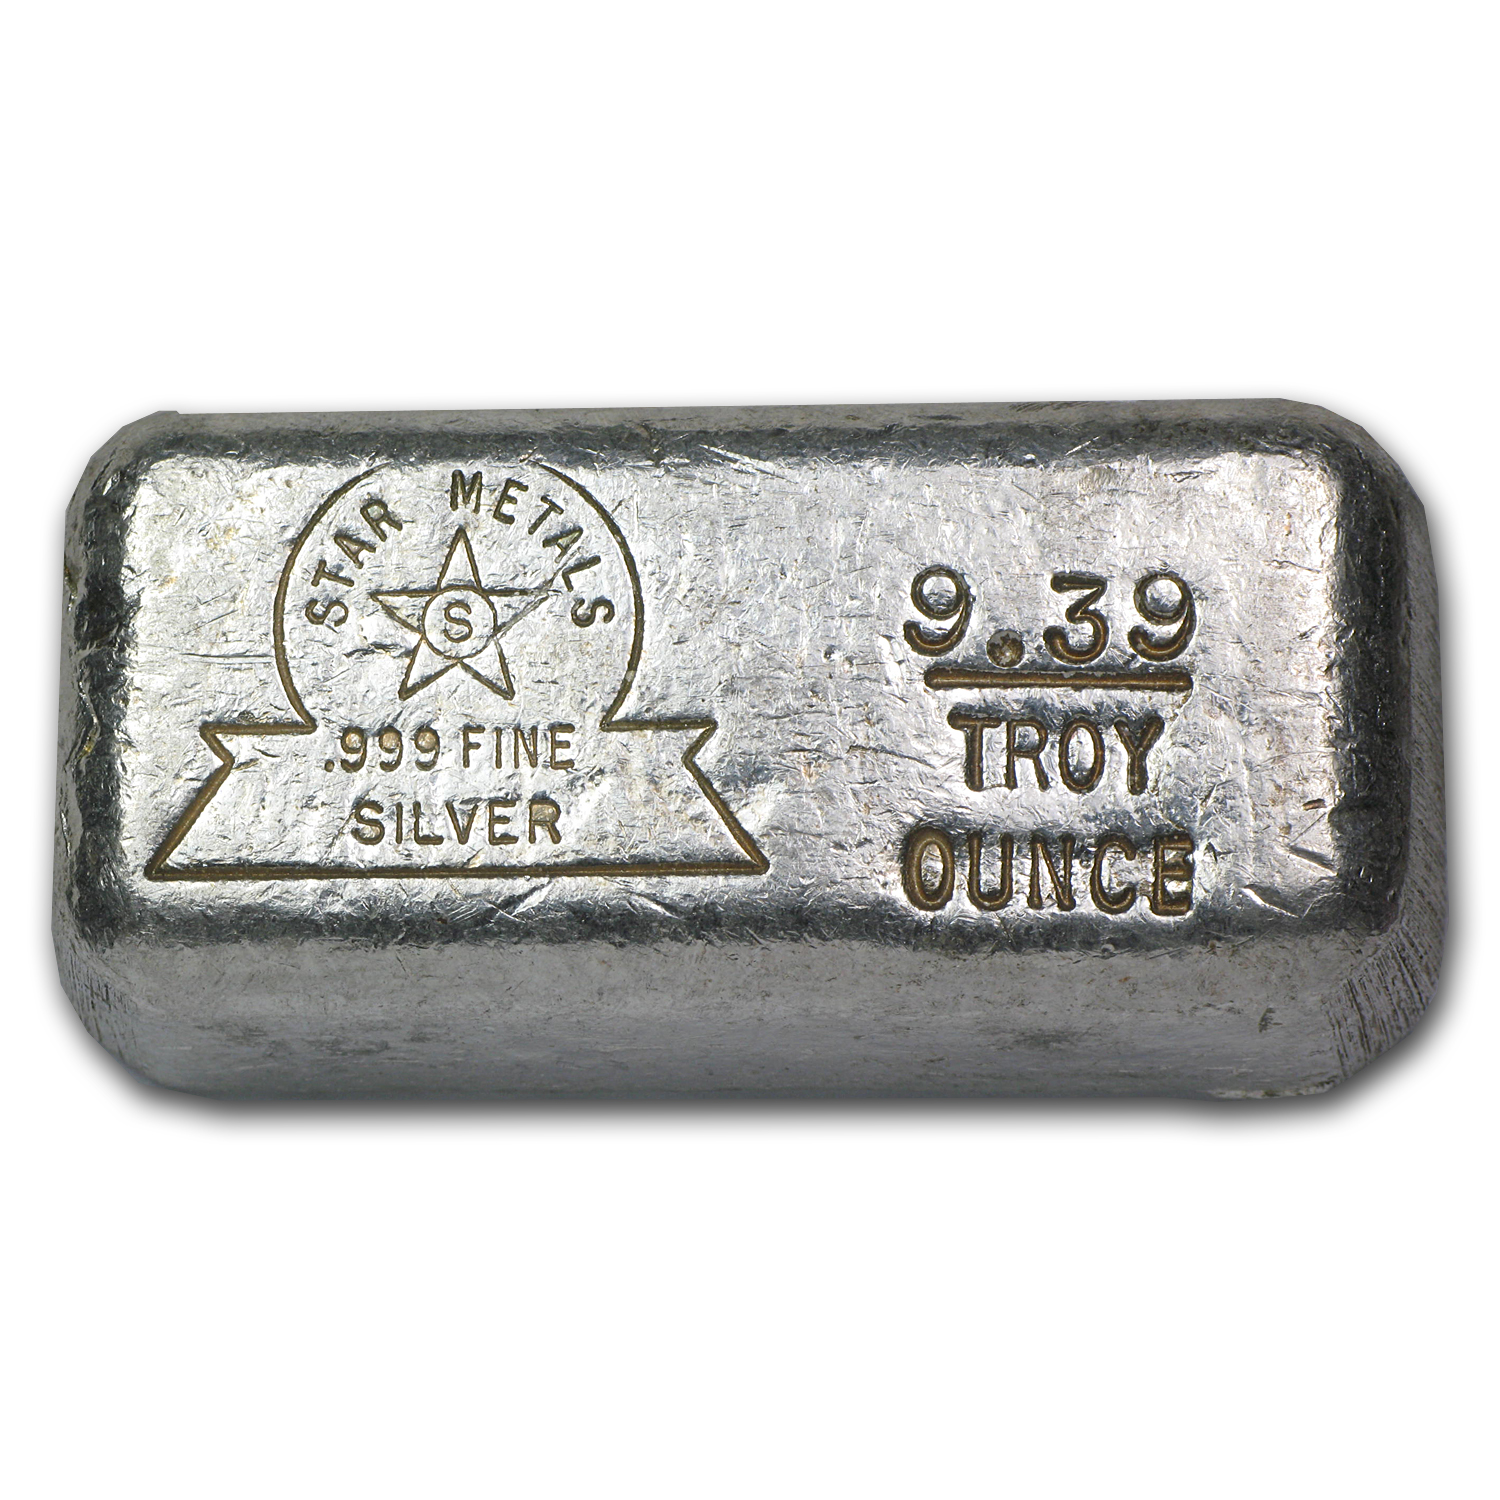 9.39 oz Silver Bar - Star Metals